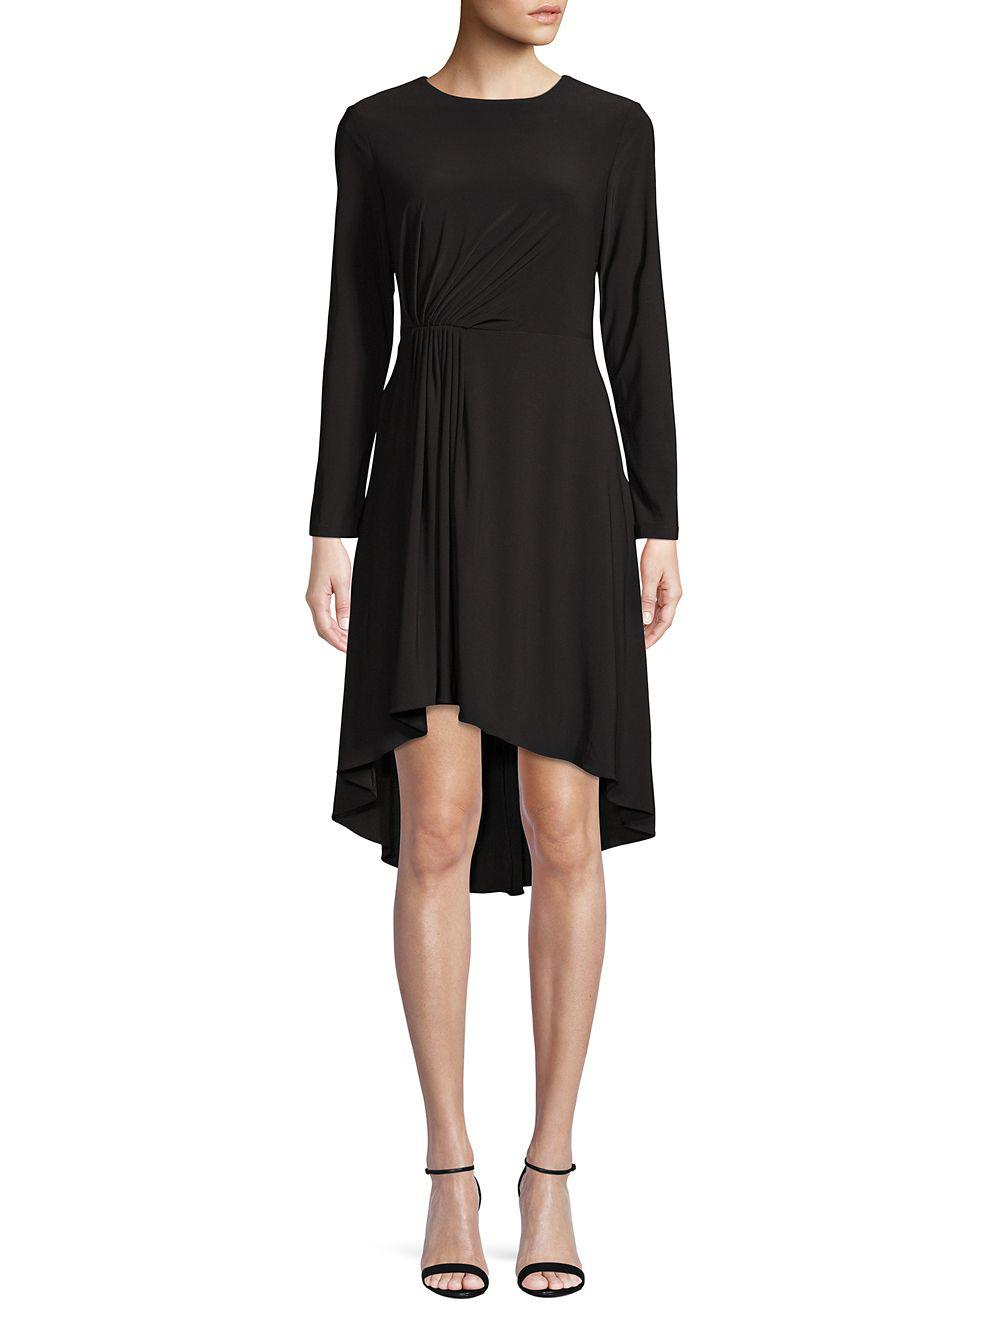 341bce08 Lyst - Adrianna Papell Long-sleeve Fit-&-flare Dress in Black